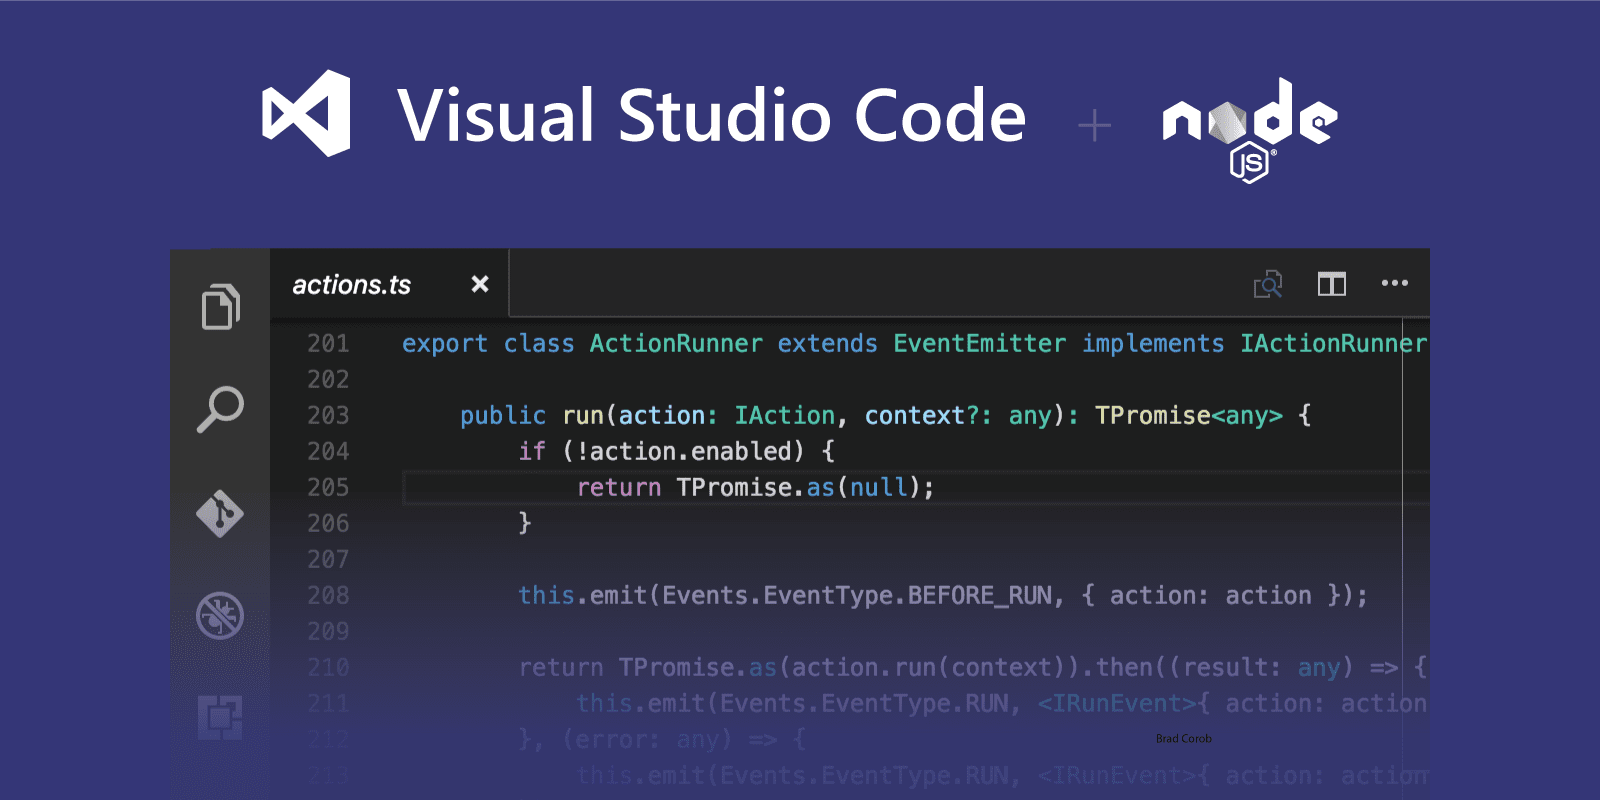 Build Node.js Apps with Visual Studio Code